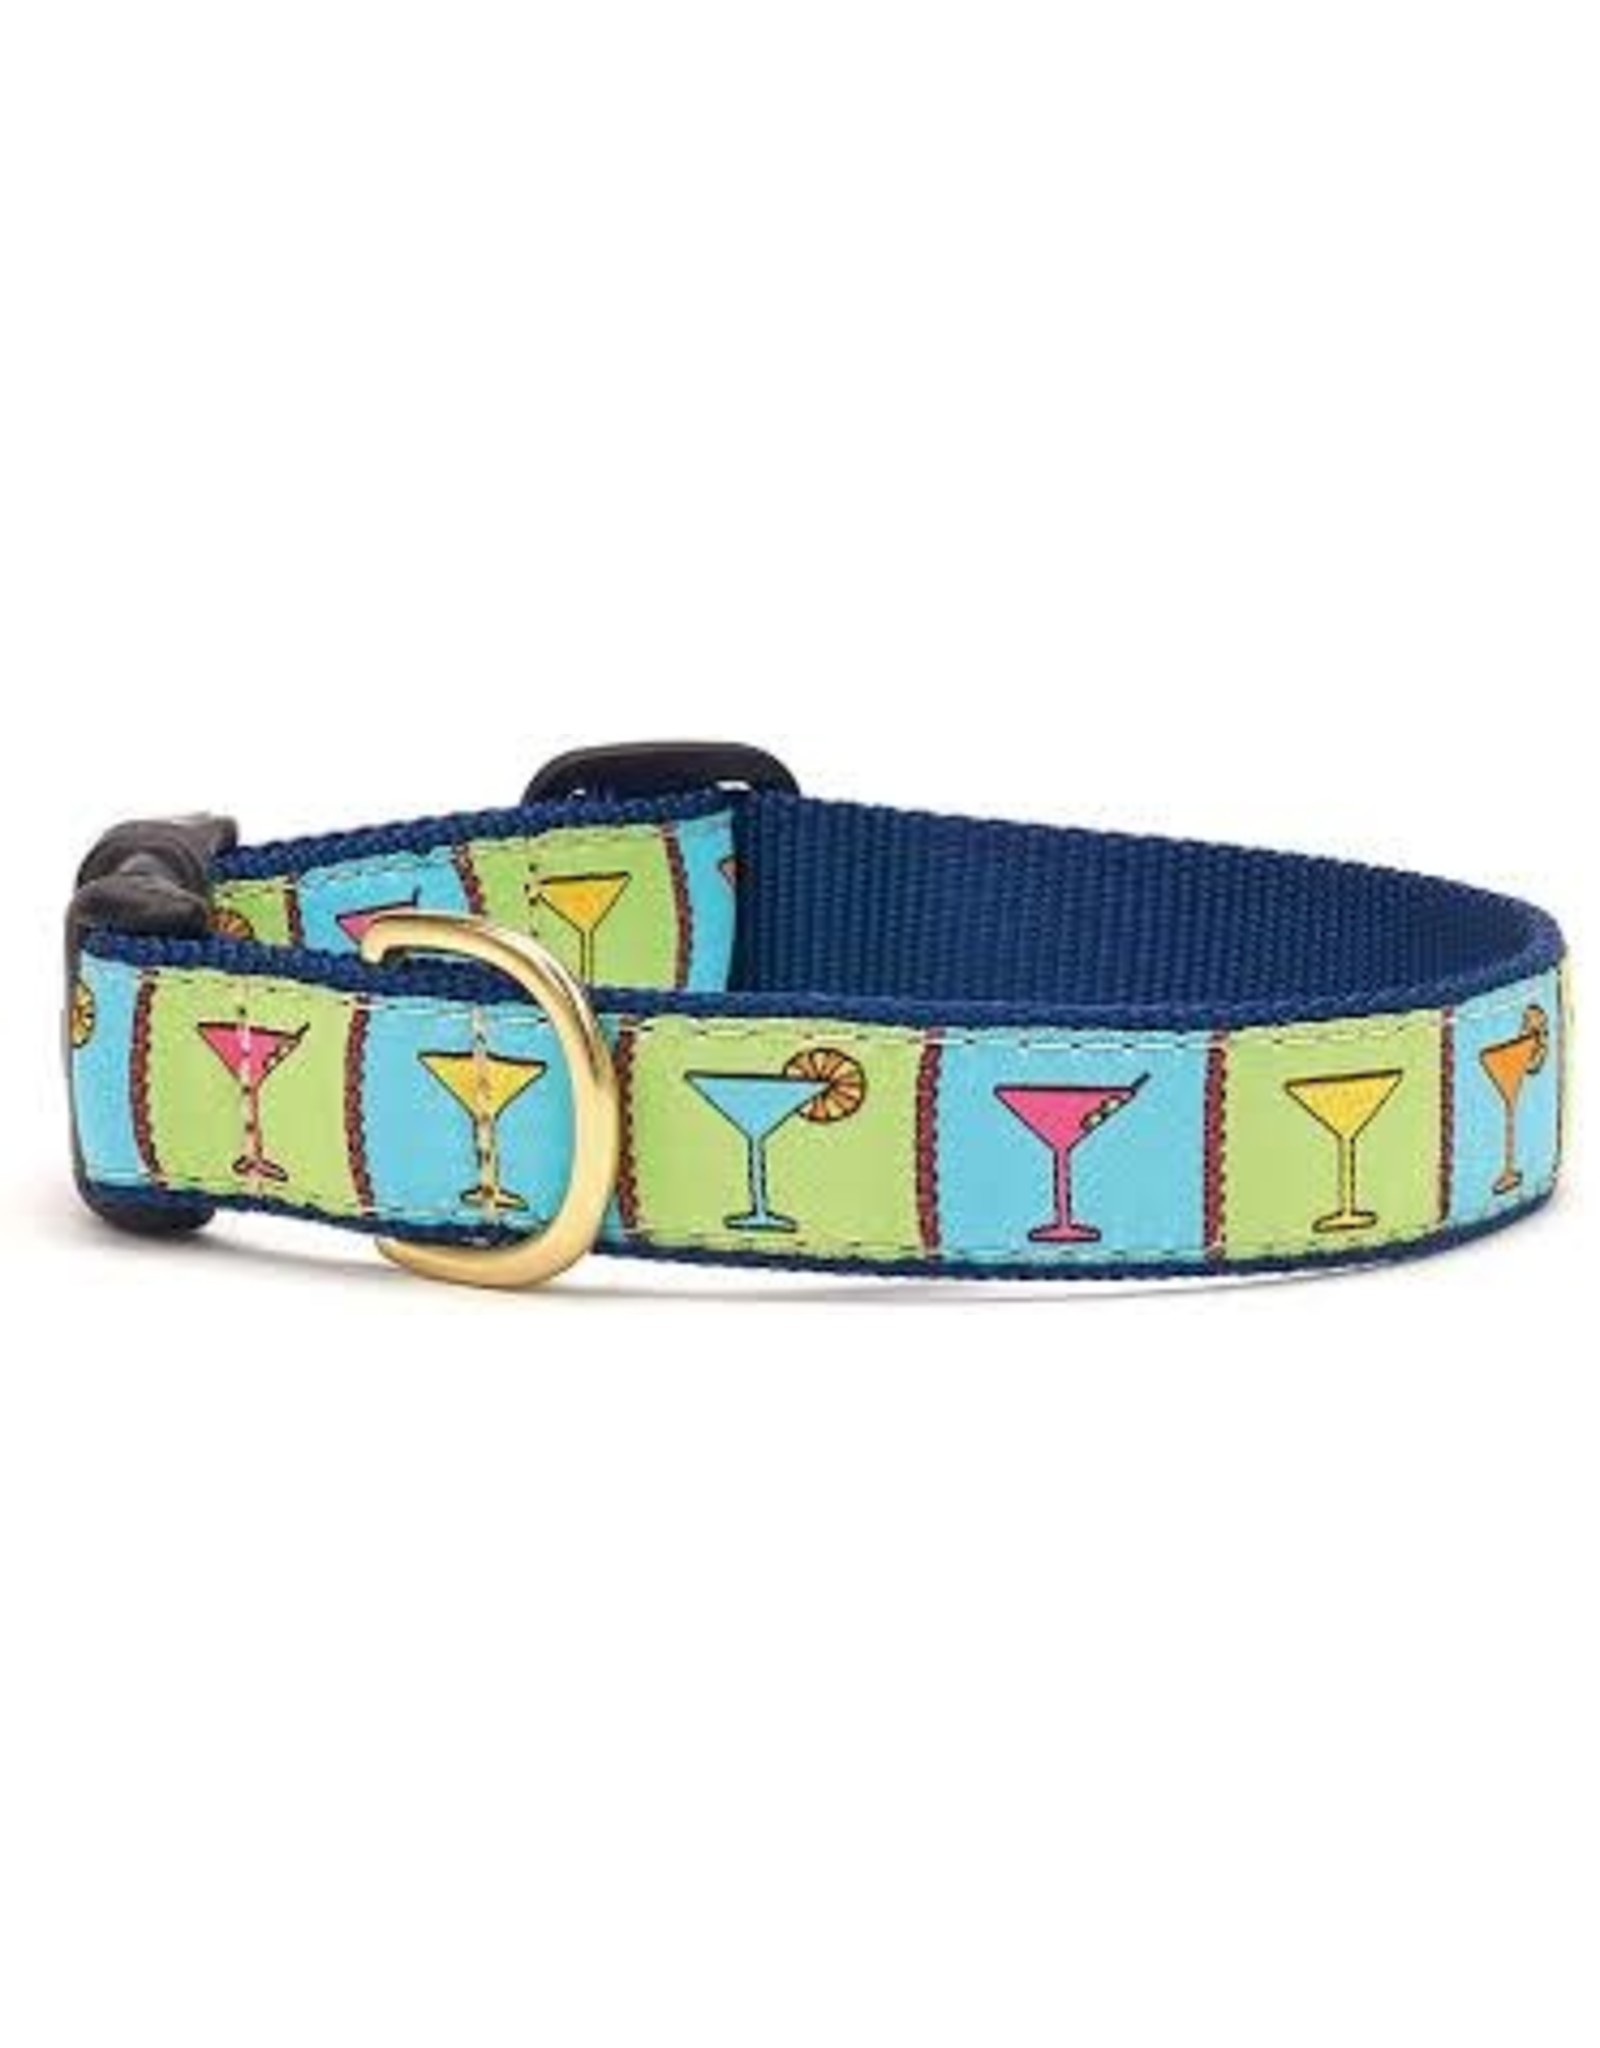 Up Country Martinis Collar: Wide, L